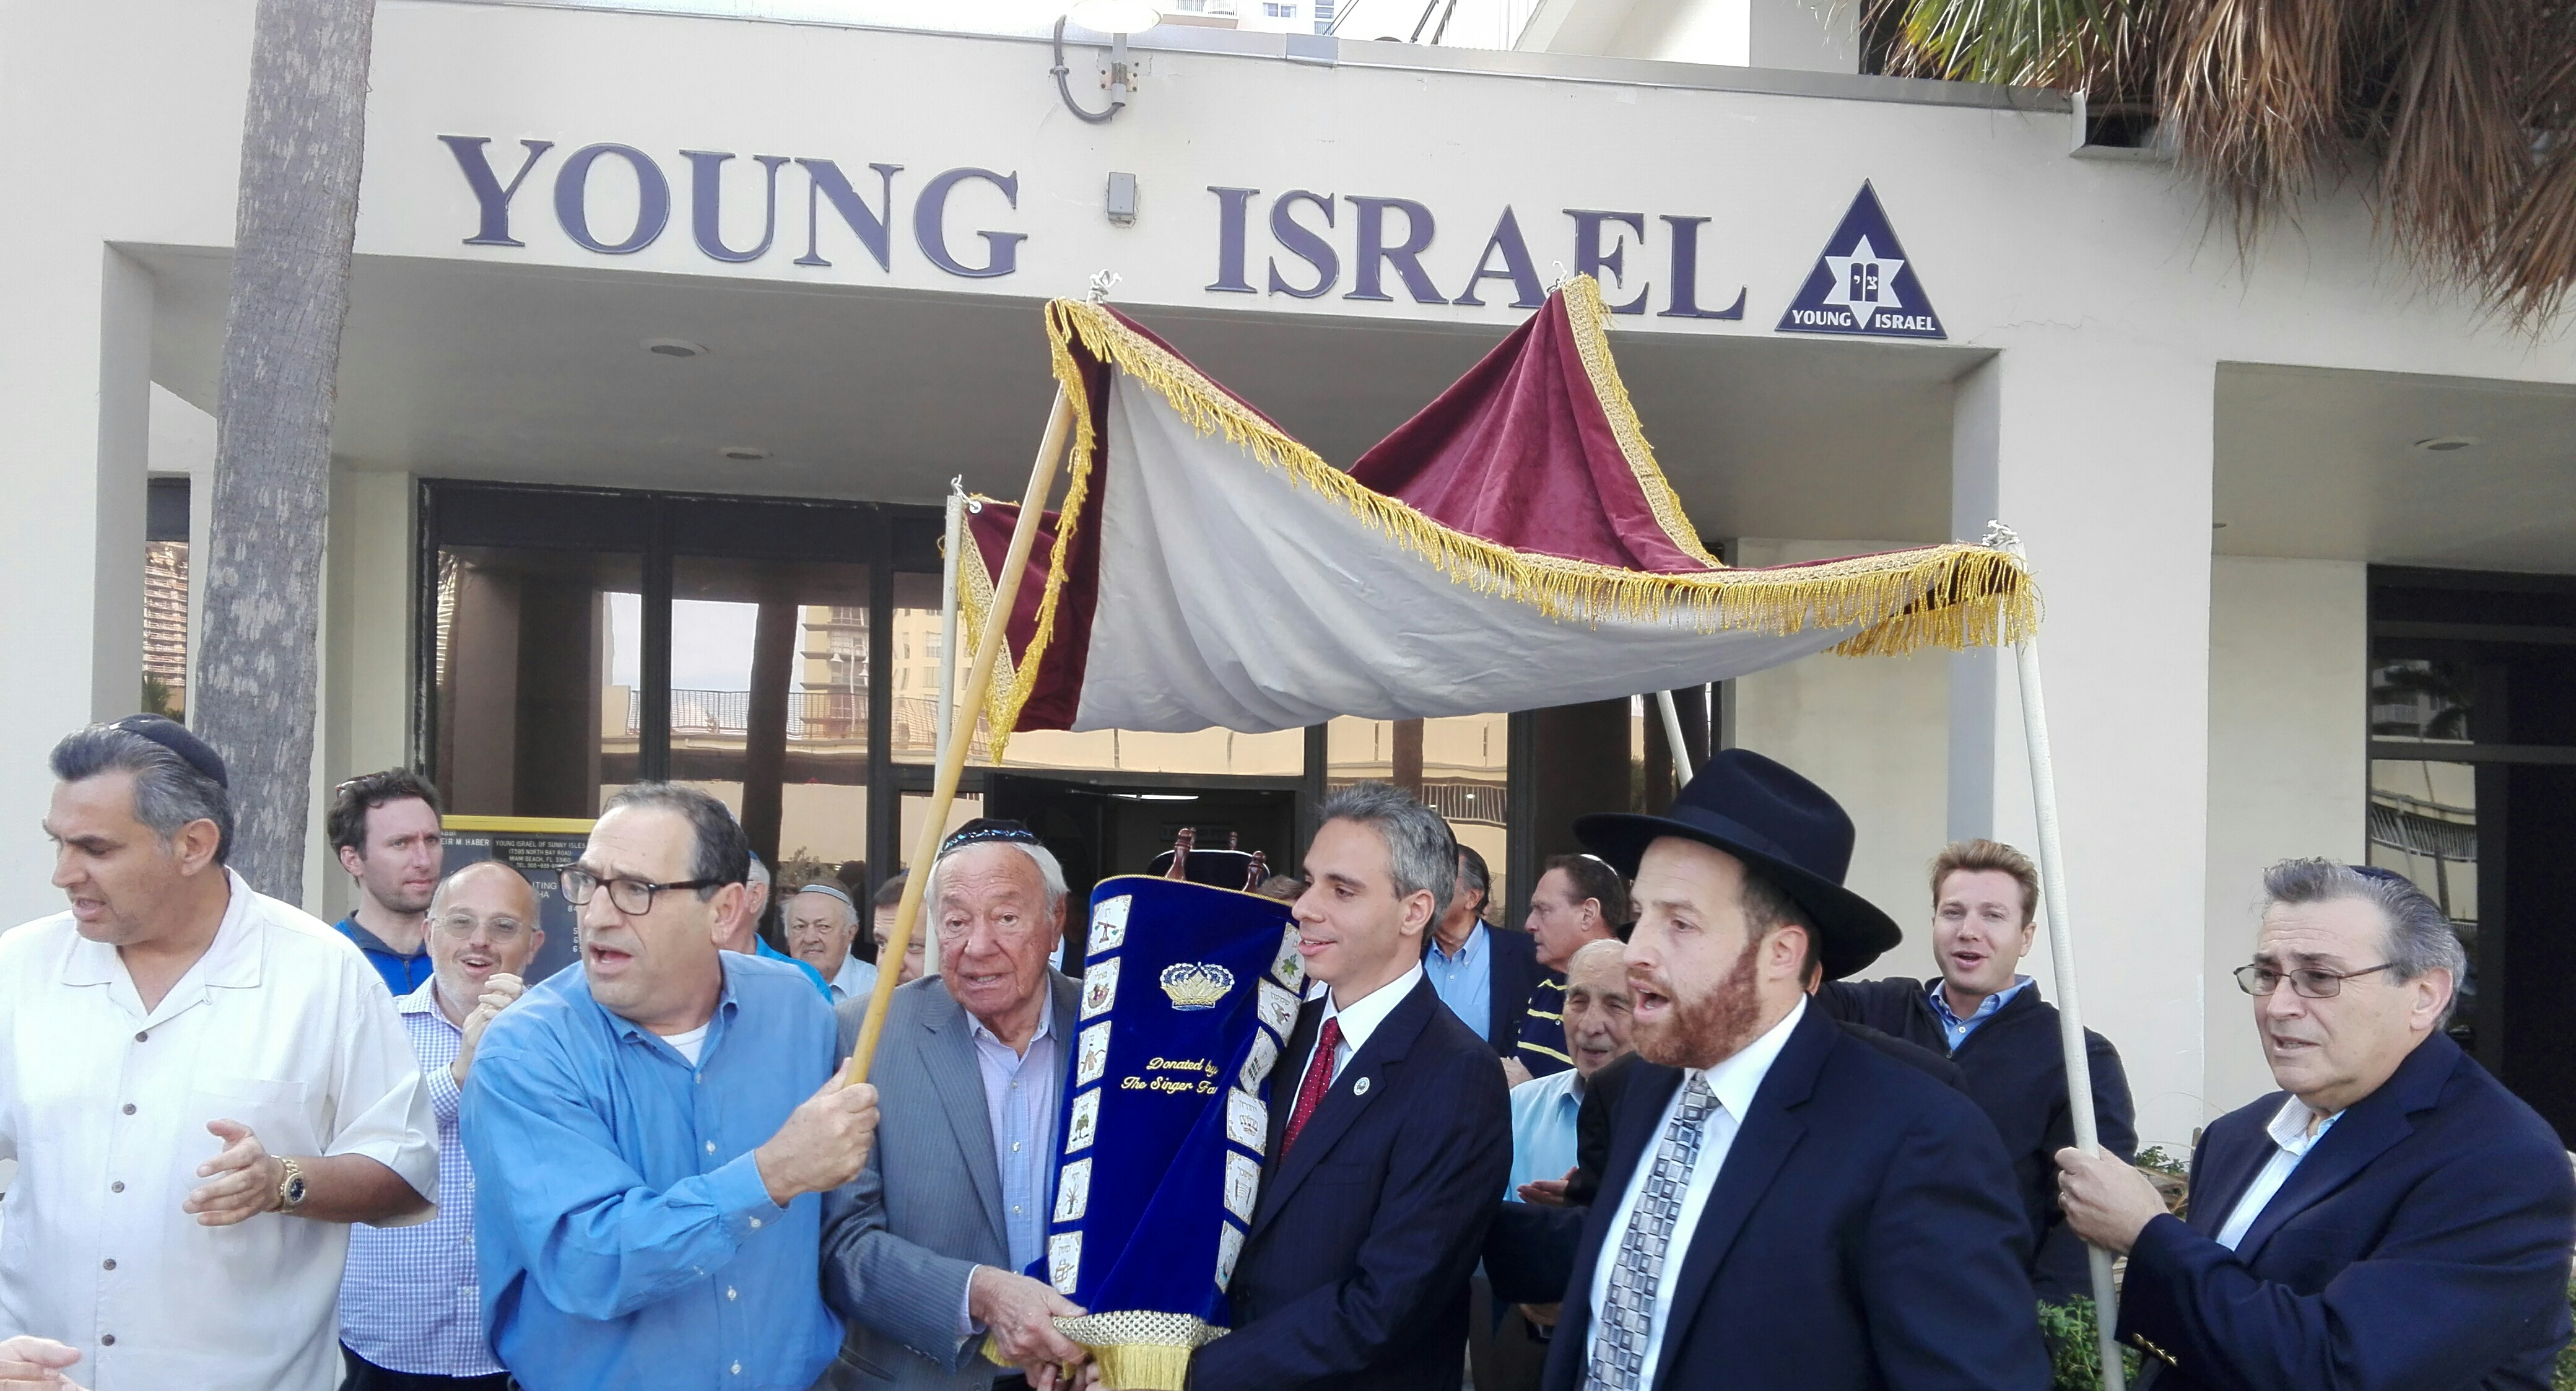 Chaim Singer and Rabbi and Torah